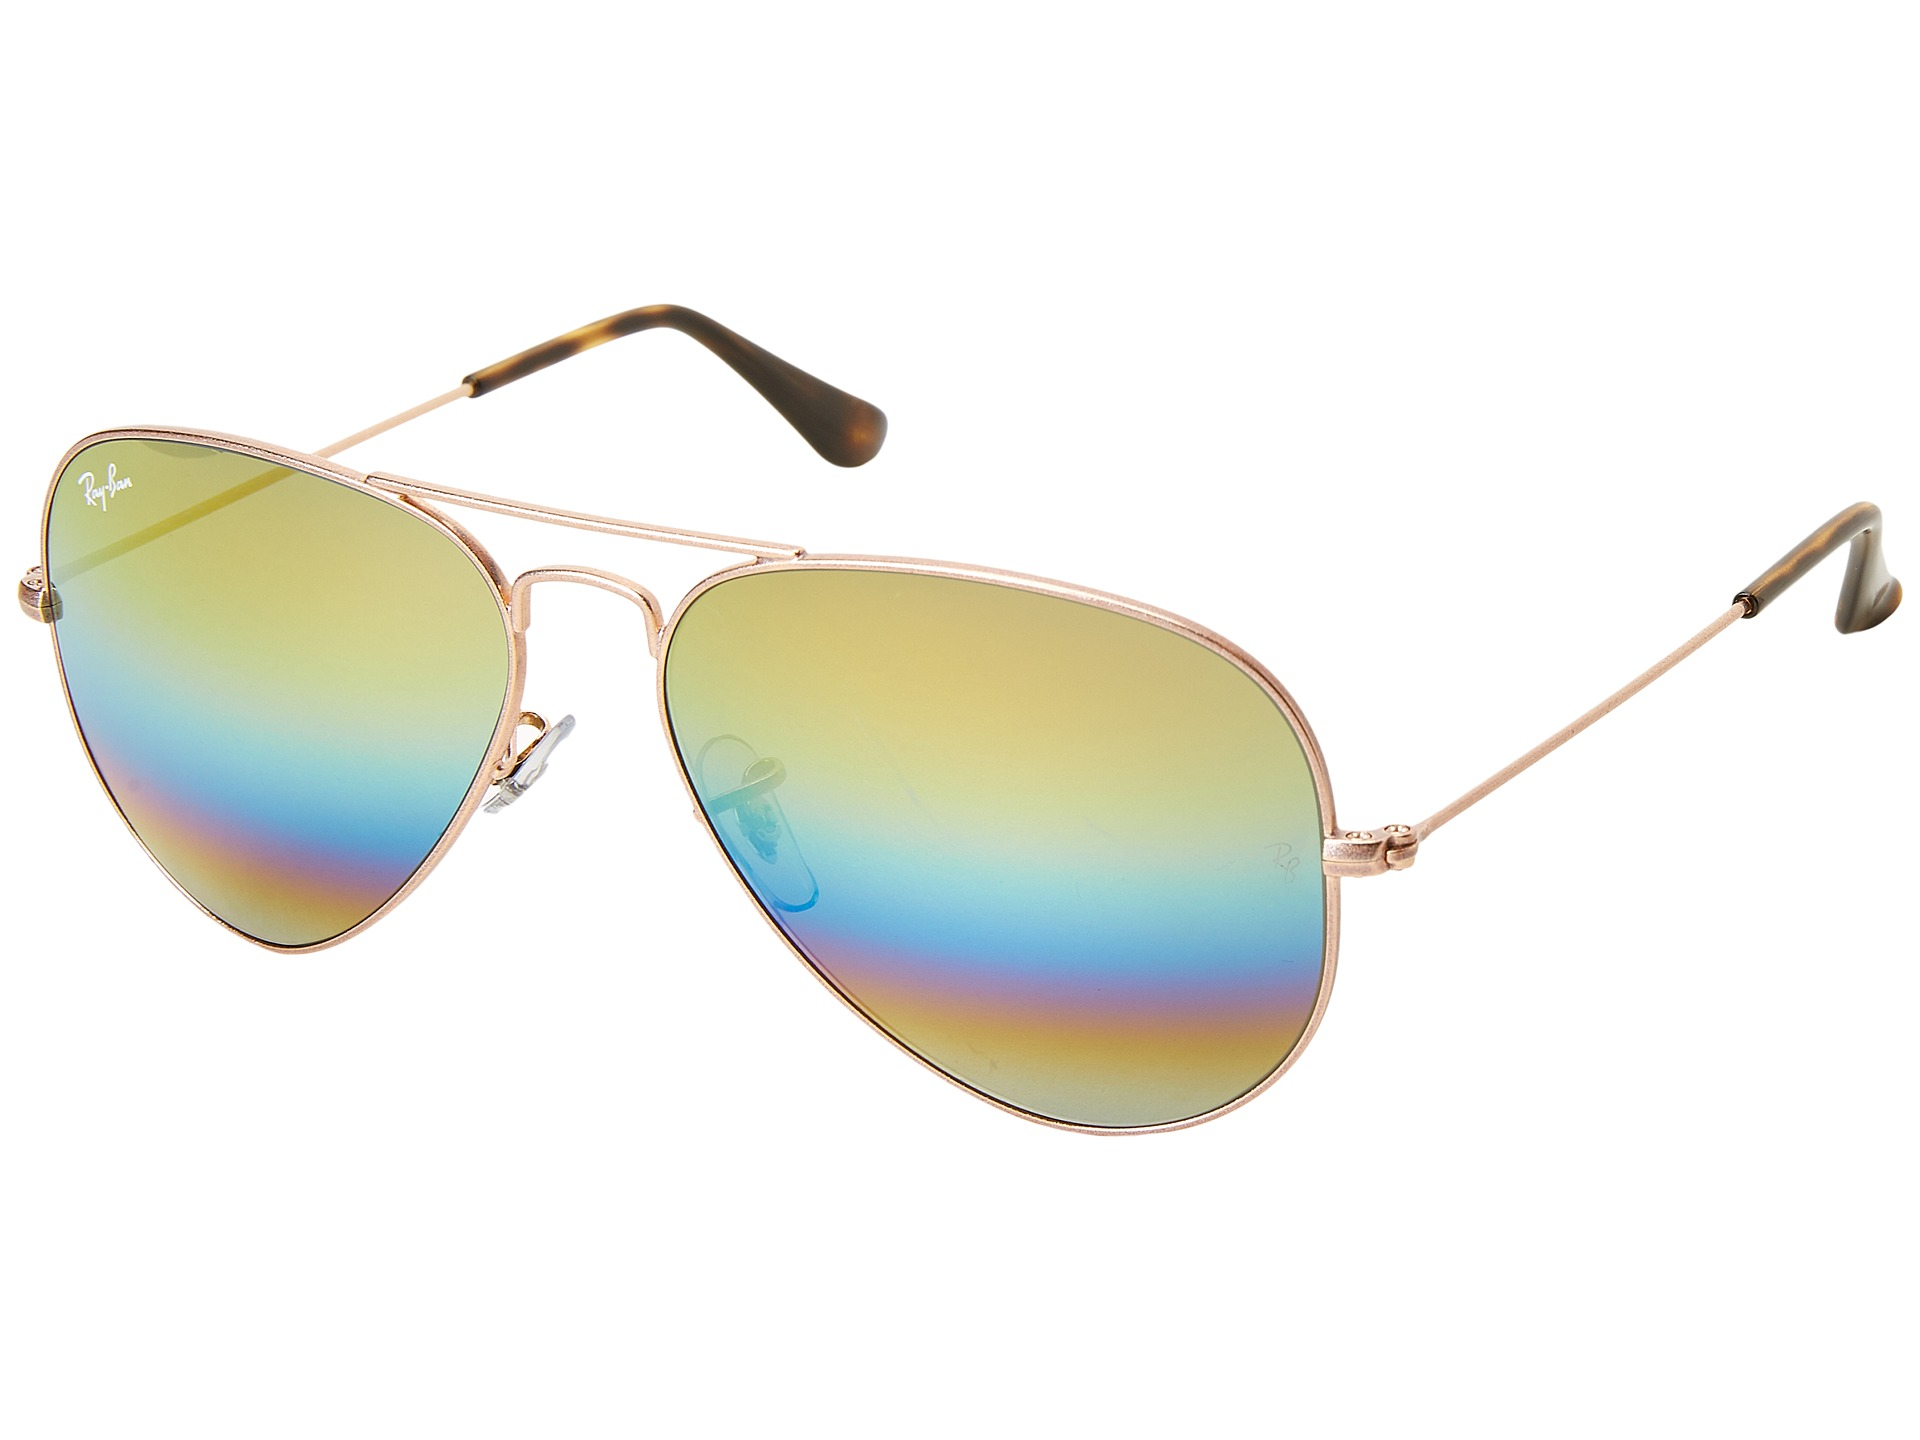 1d6afd8734 Ray-Ban RB3025 Original Aviator 62mm at bitterrootpubliclibrary.org. Fancy  - Ray-Ban Outdoorsman II Rainbow Sunglasses